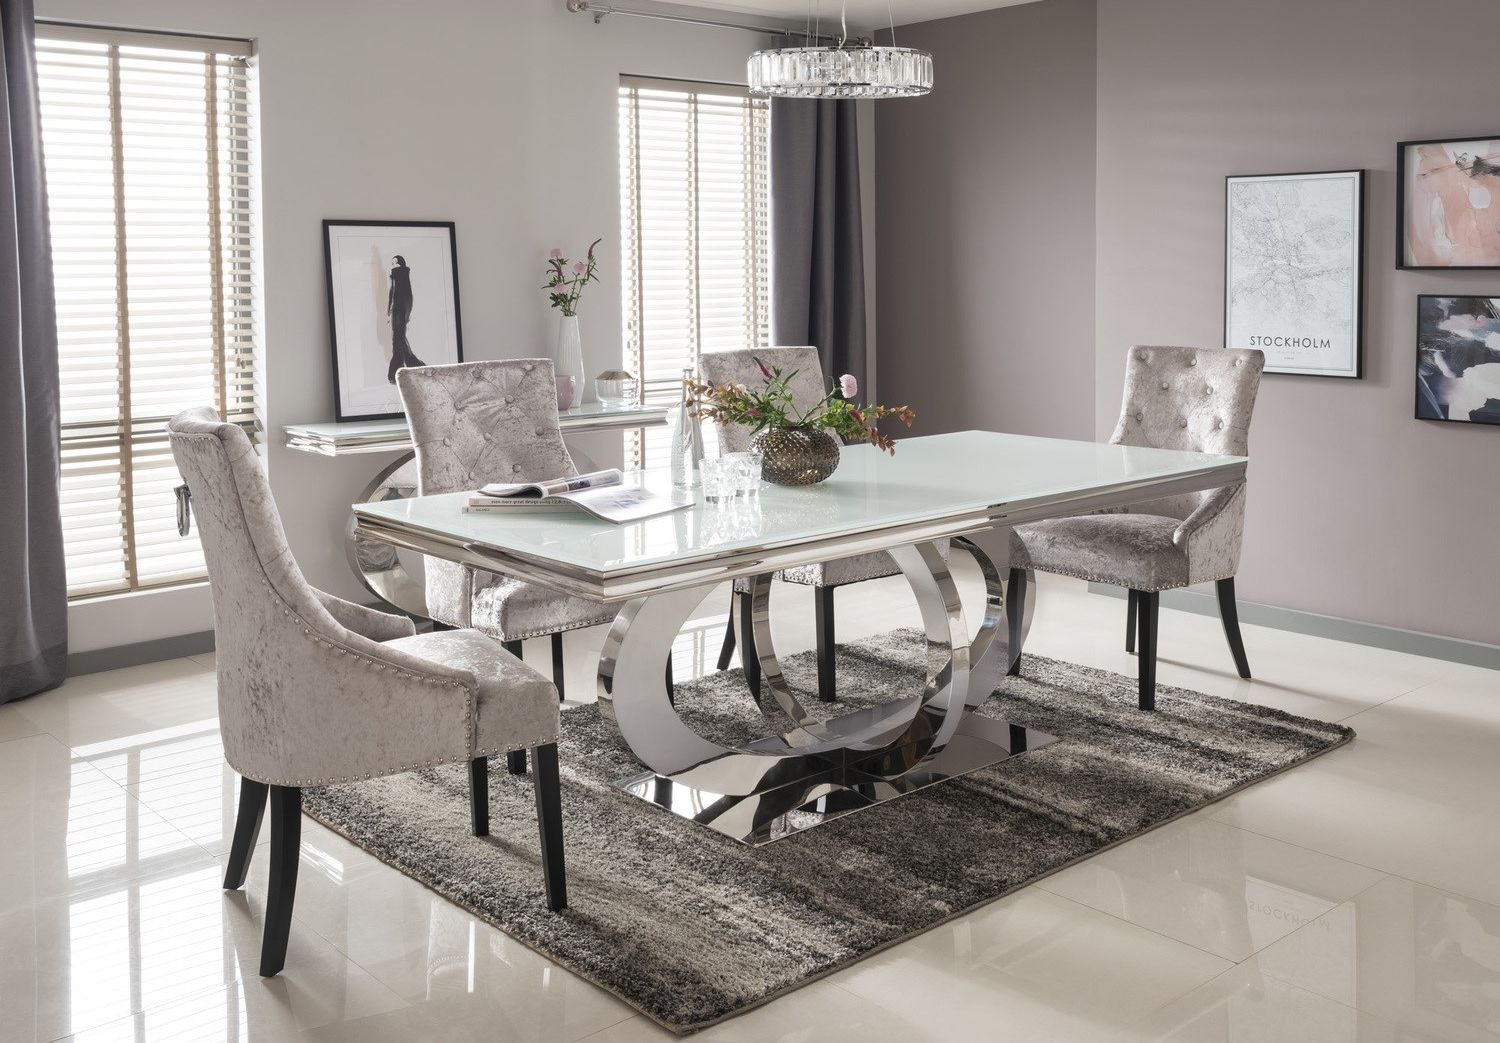 Vida Living Orion White Glass Dining Table 180cm Chrome Dining